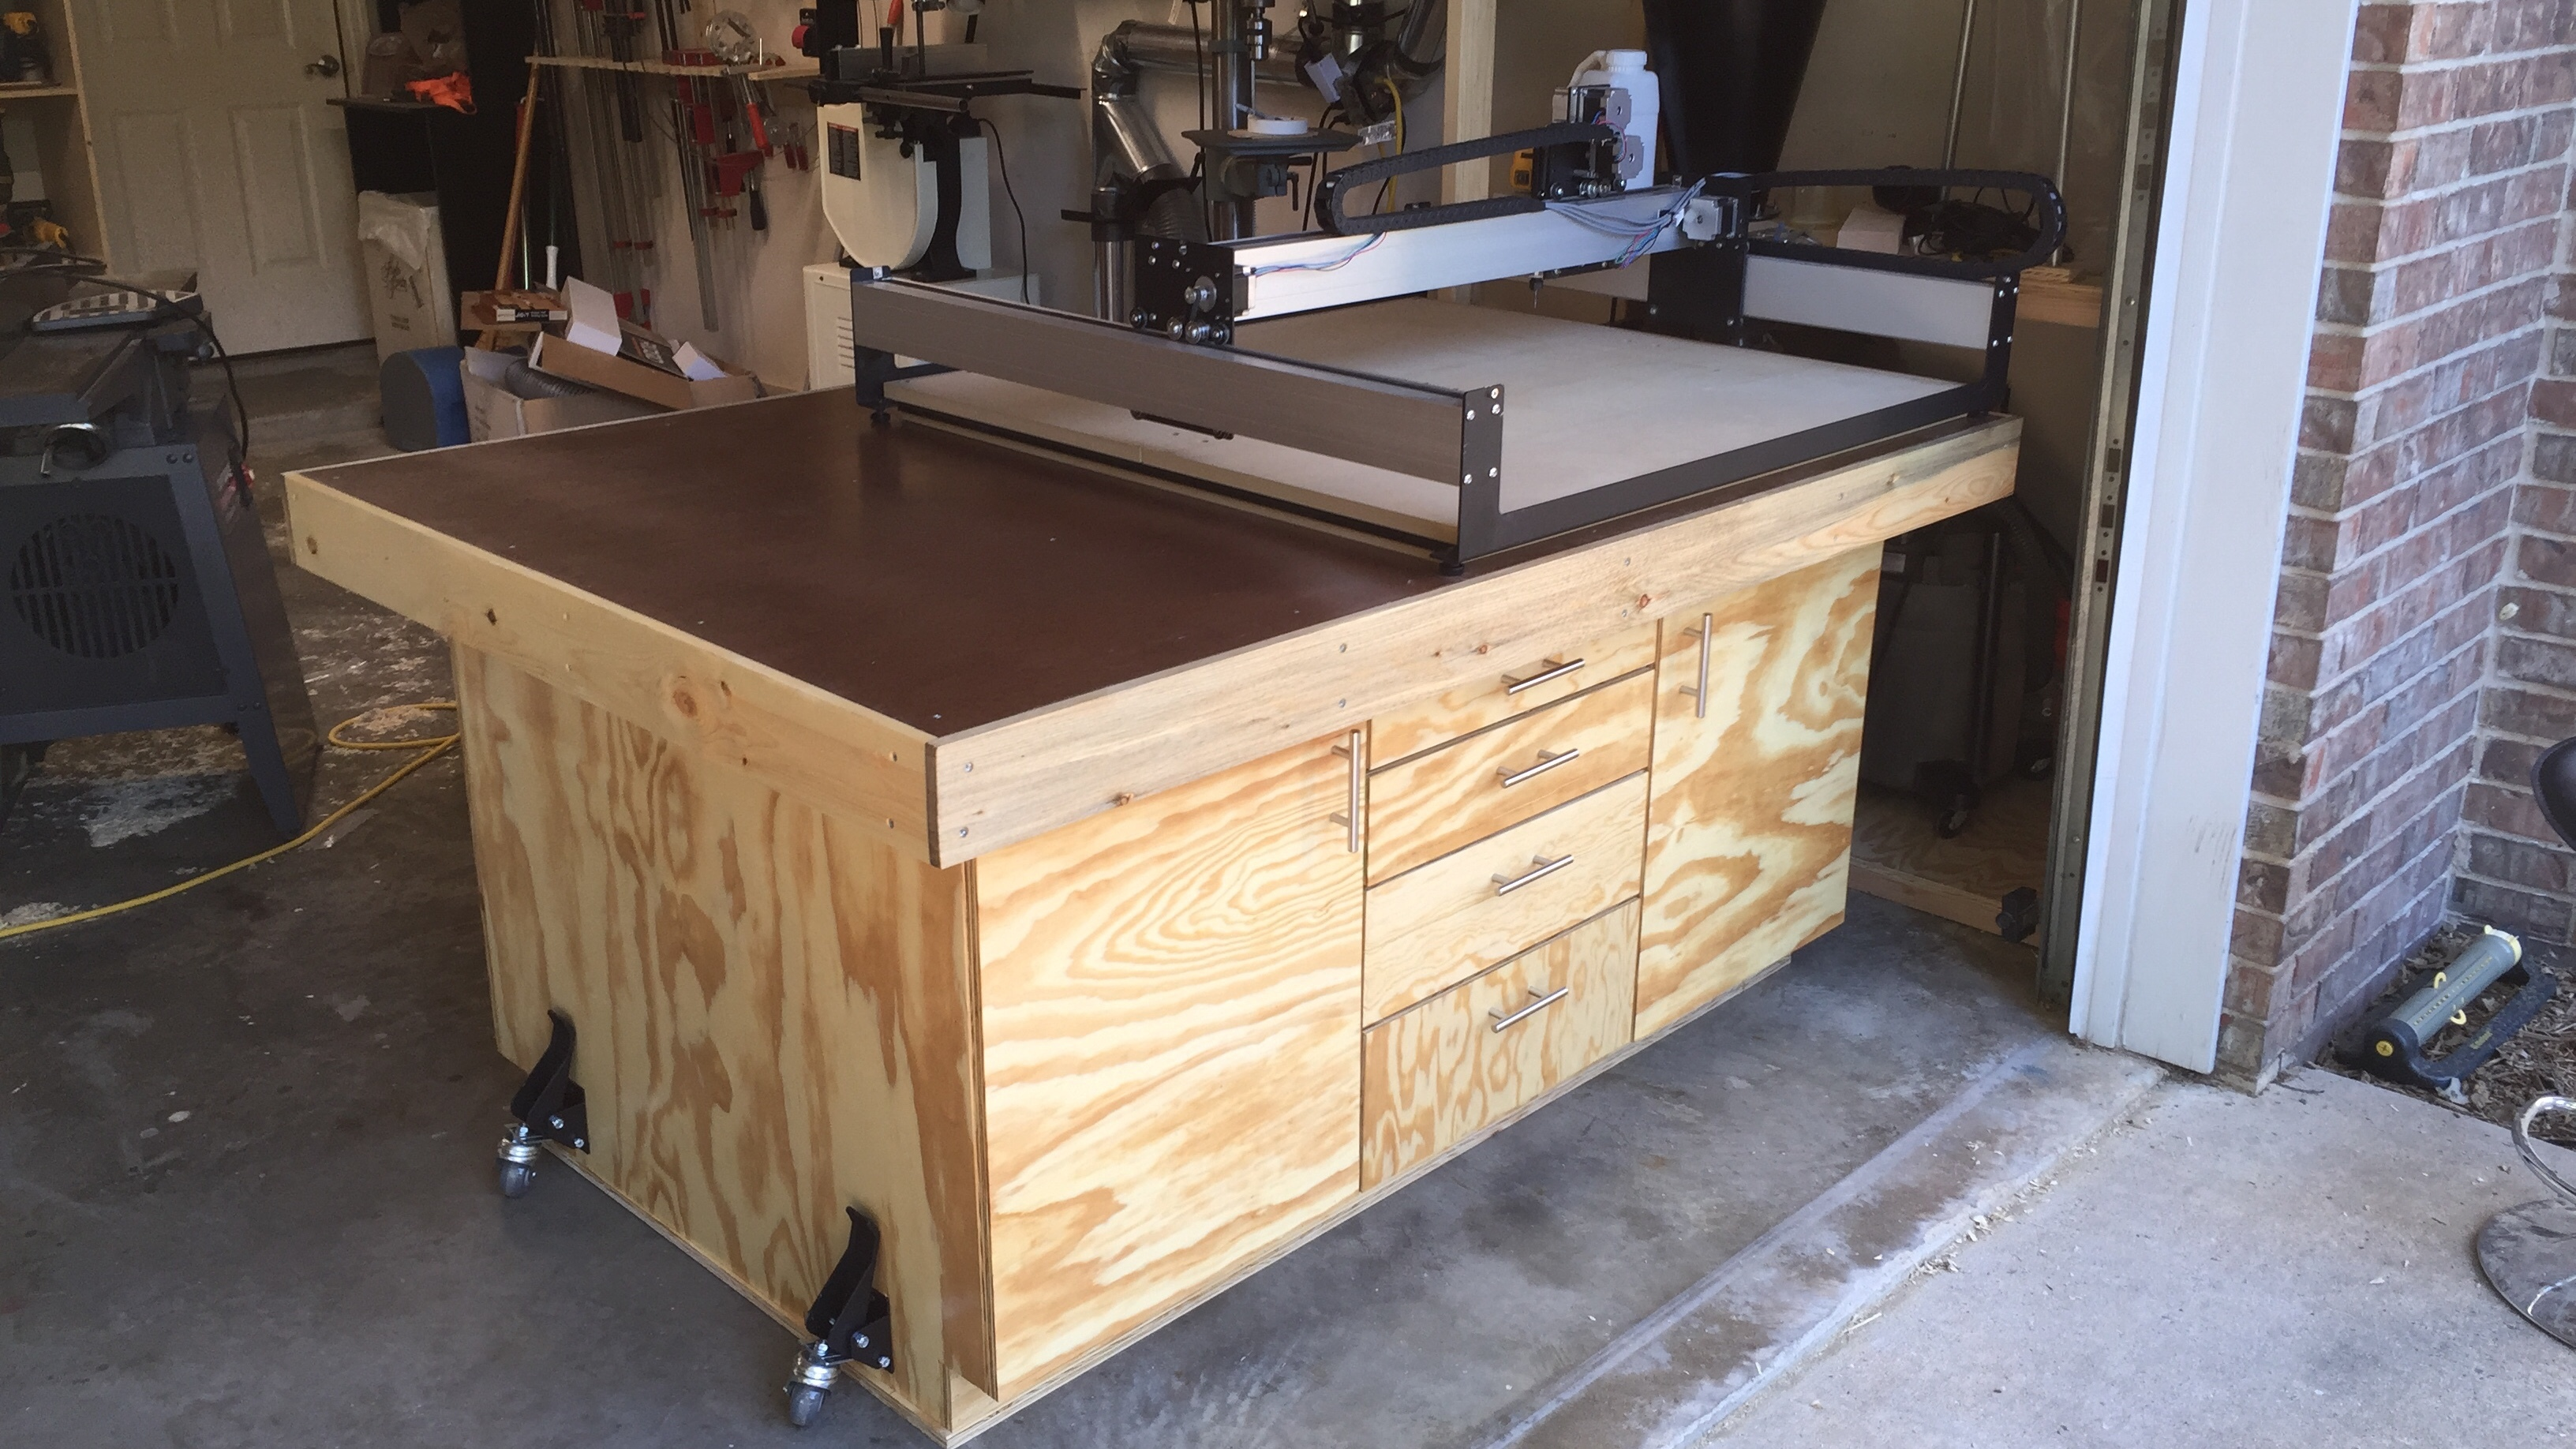 IMG 0257 JPG3264x1836 1 63 MB. CNC Table Top   Workbench   Back to Work to REST   Carbide 3D